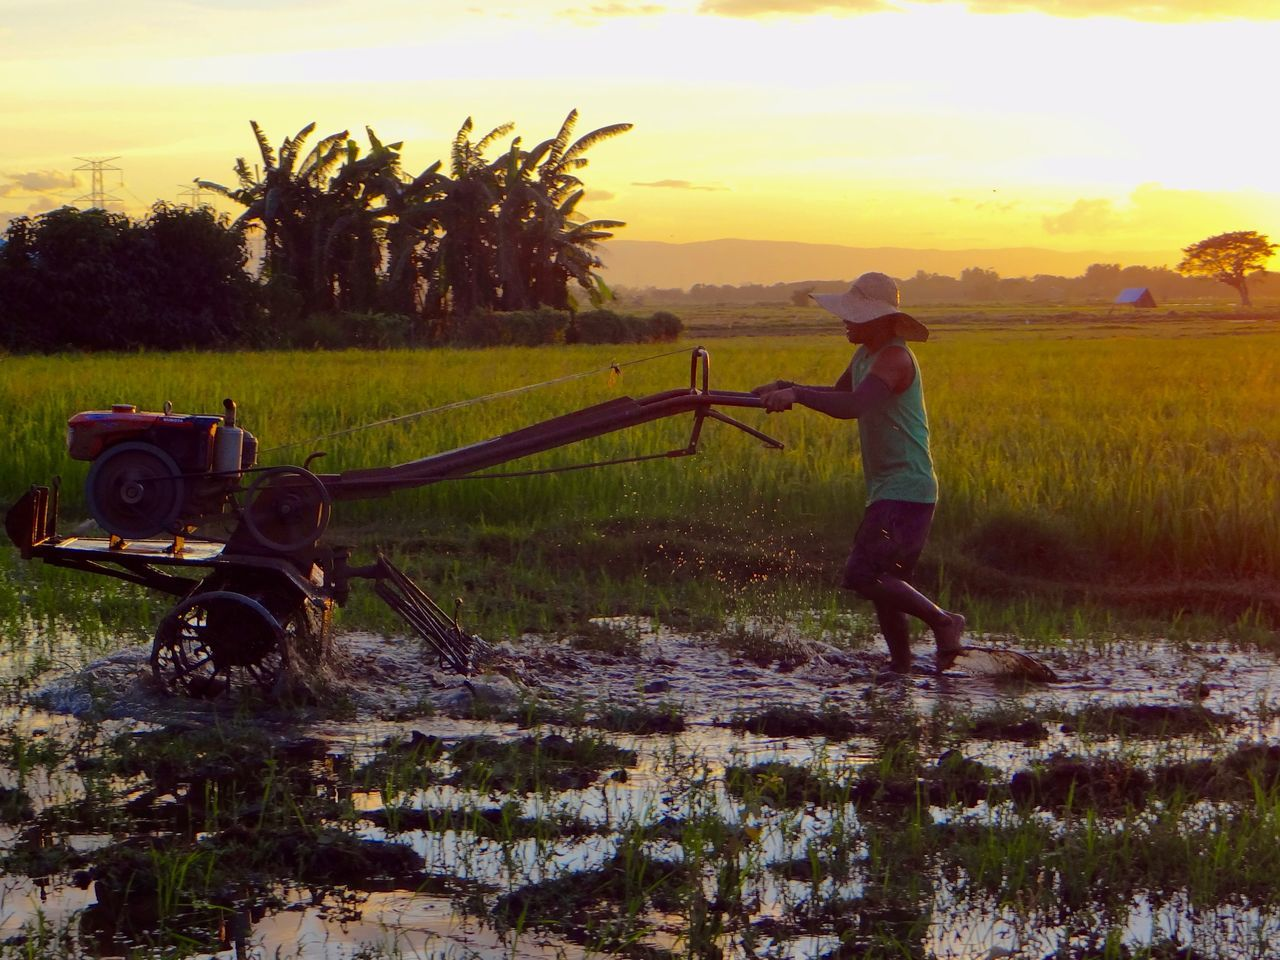 real people, sunset, field, nature, growth, agriculture, tree, sky, one person, full length, beauty in nature, outdoors, water, lifestyles, grass, scenics, working, irrigation equipment, rice paddy, day, young adult, people